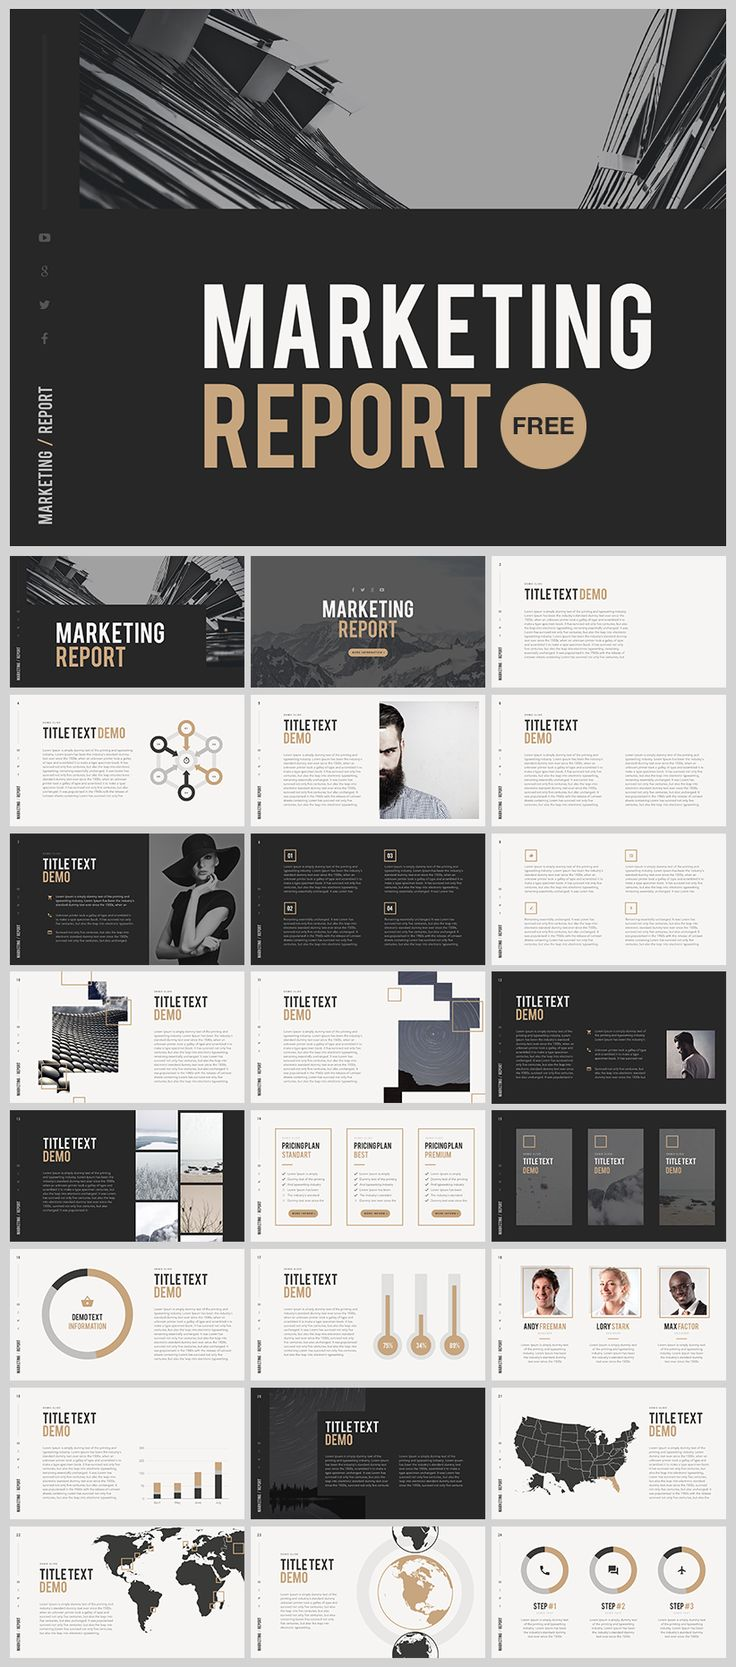 Best Free Presentation Templates Images On Pinterest - Awesome free environmental powerpoint templates ideas